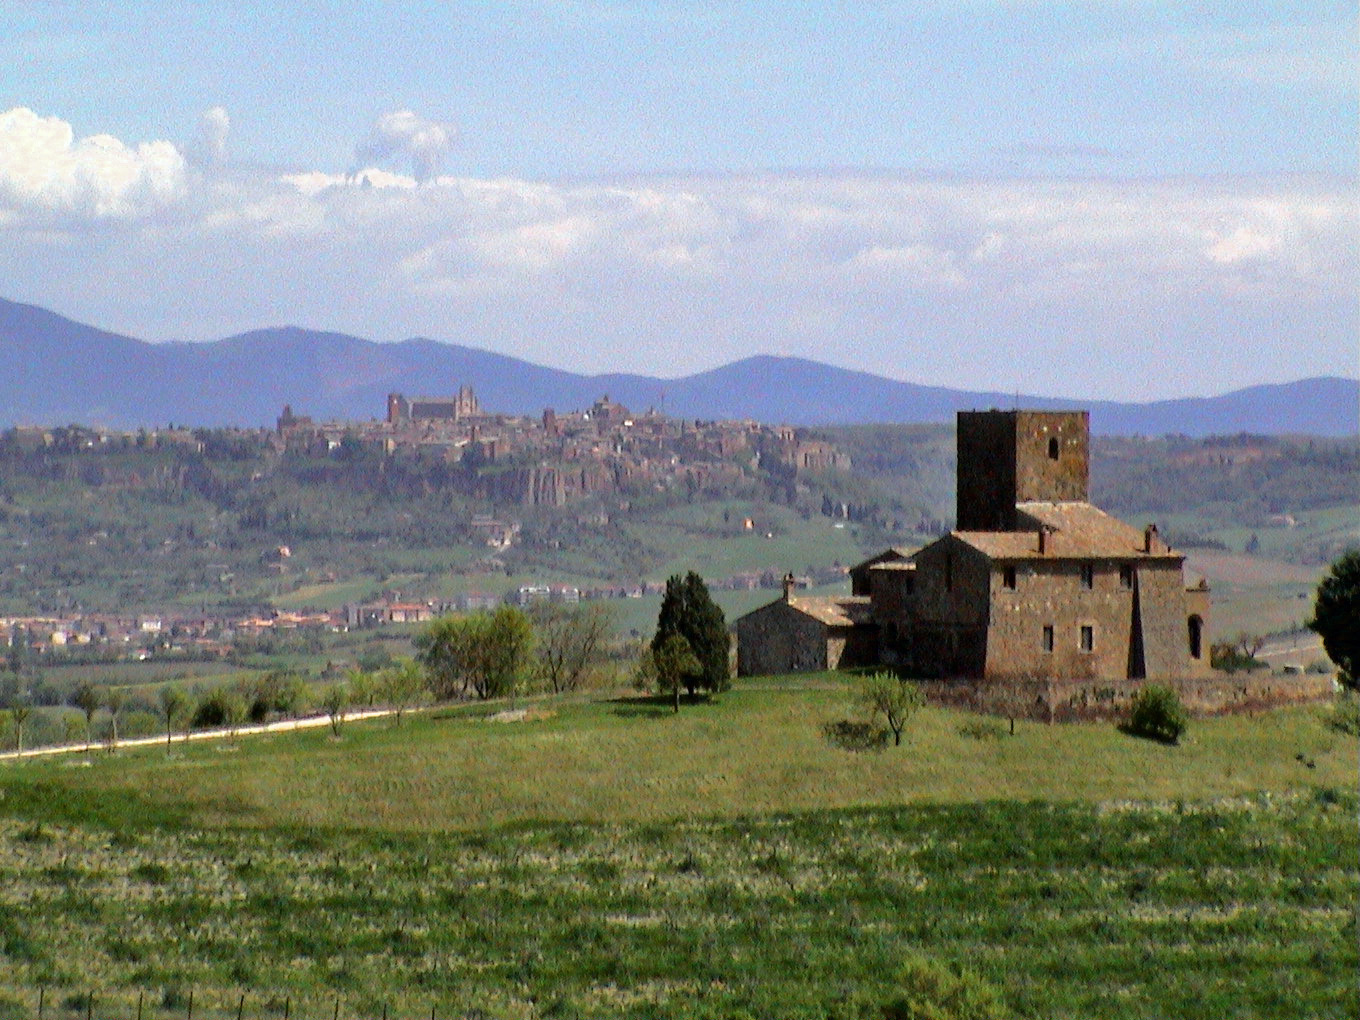 On the road to Orvieto